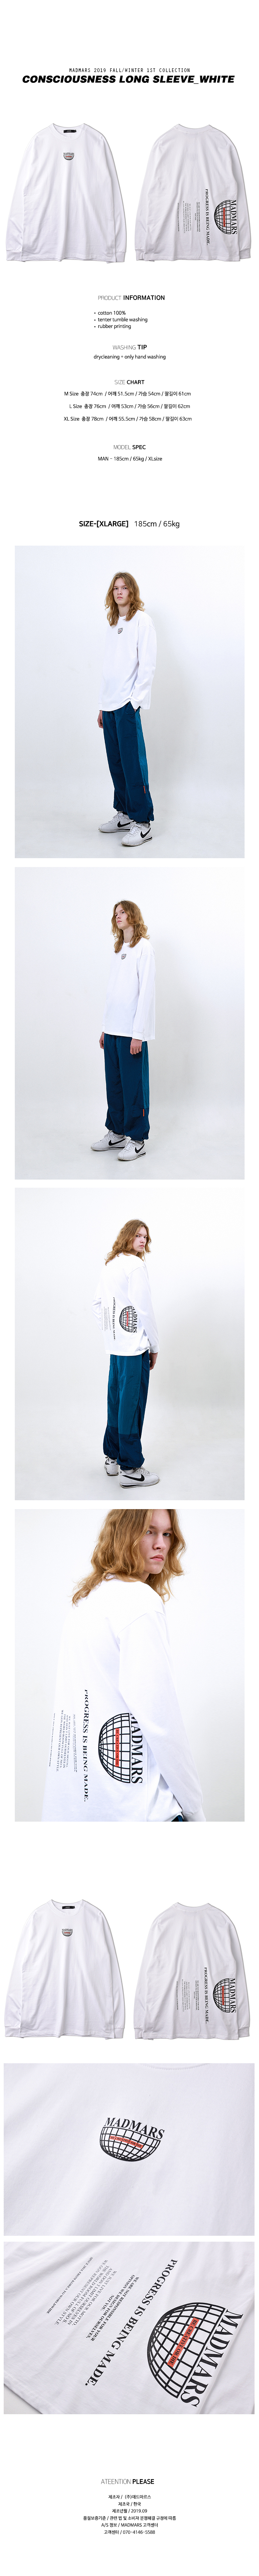 CONSCIOUSNESS LONG SLEEVE_WHITE.jpg